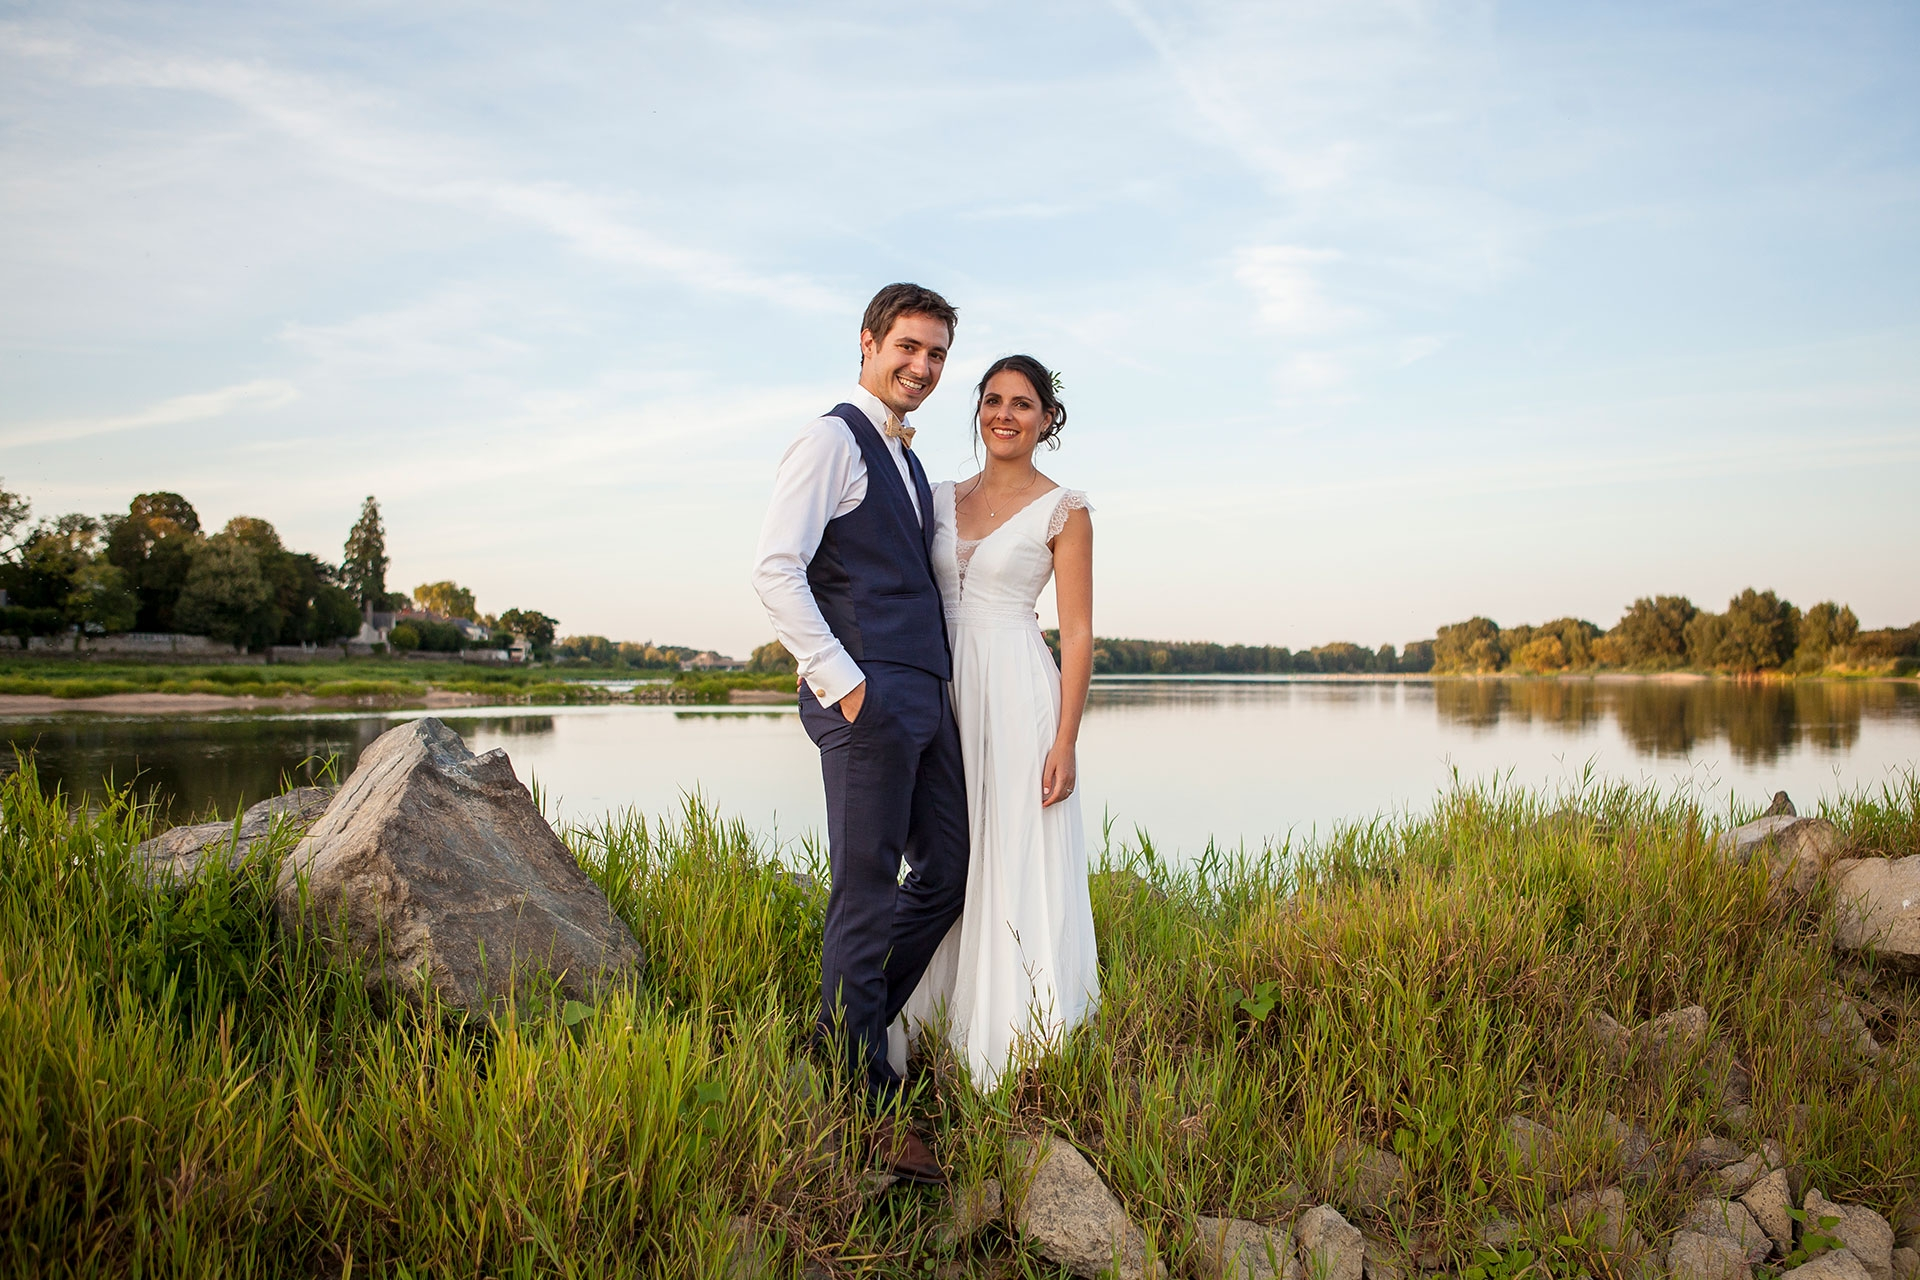 particuliers-evenements-mariage-oui-elise&quentin-76